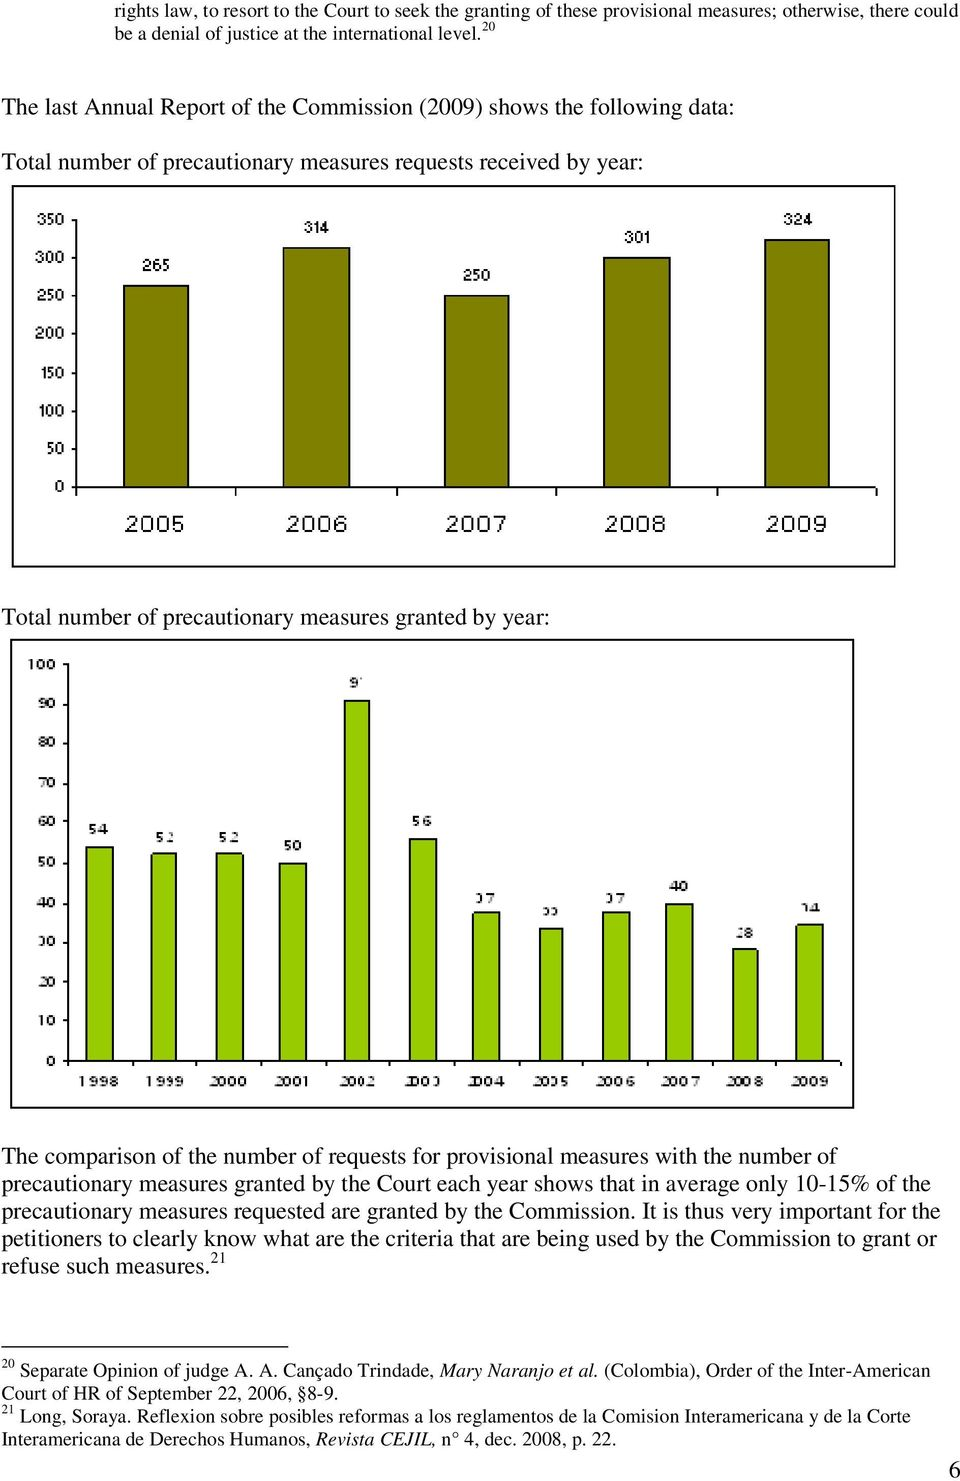 The comparison of the number of requests for provisional measures with the number of precautionary measures granted by the Court each year shows that in average only 10-15% of the precautionary